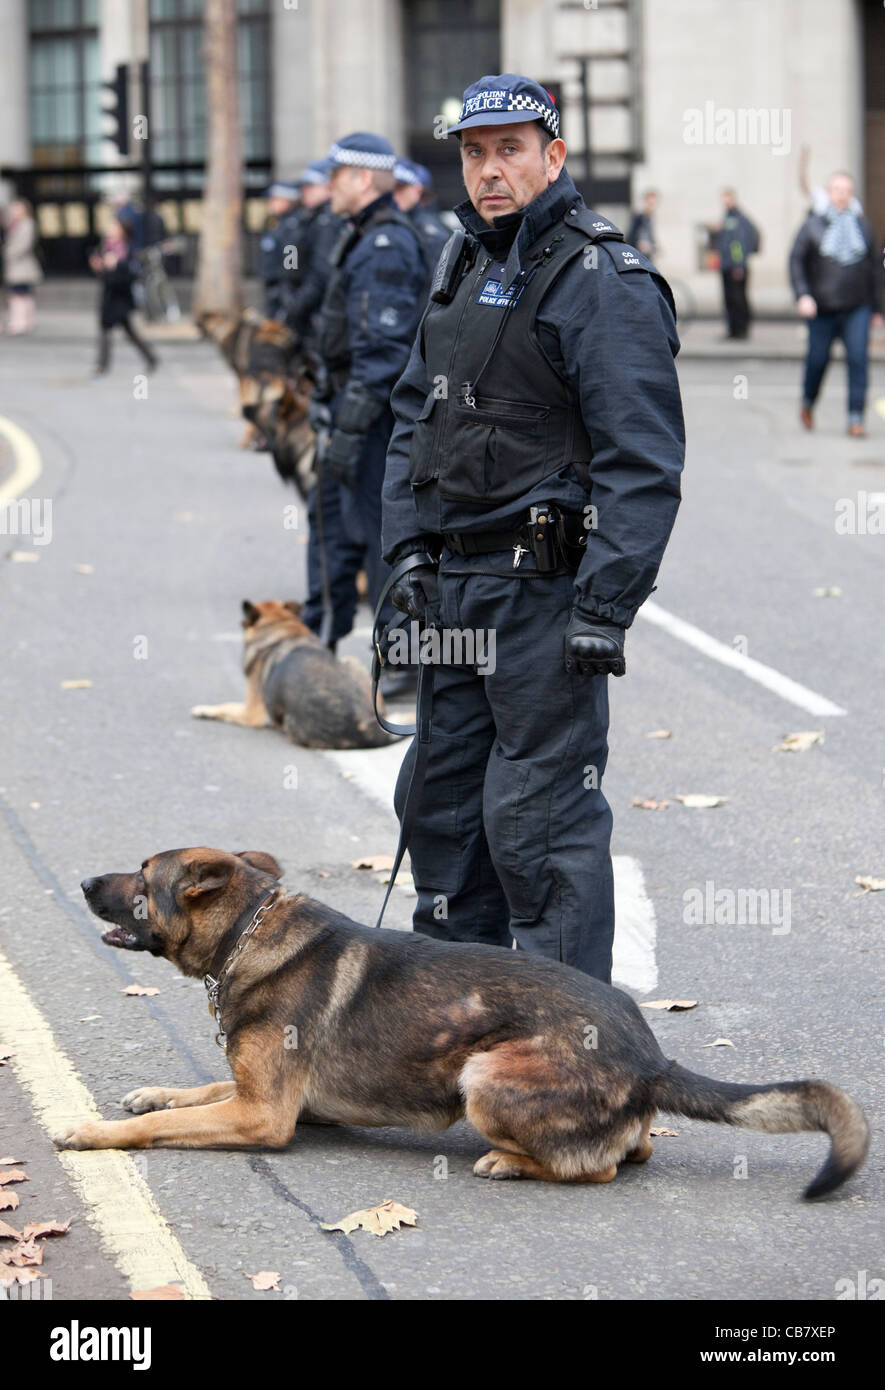 the role of the dogs in the police force He has changed the public image of the police force so much that many other police precincts in the area are considering adding their own monkeys to the force 5 & 6.